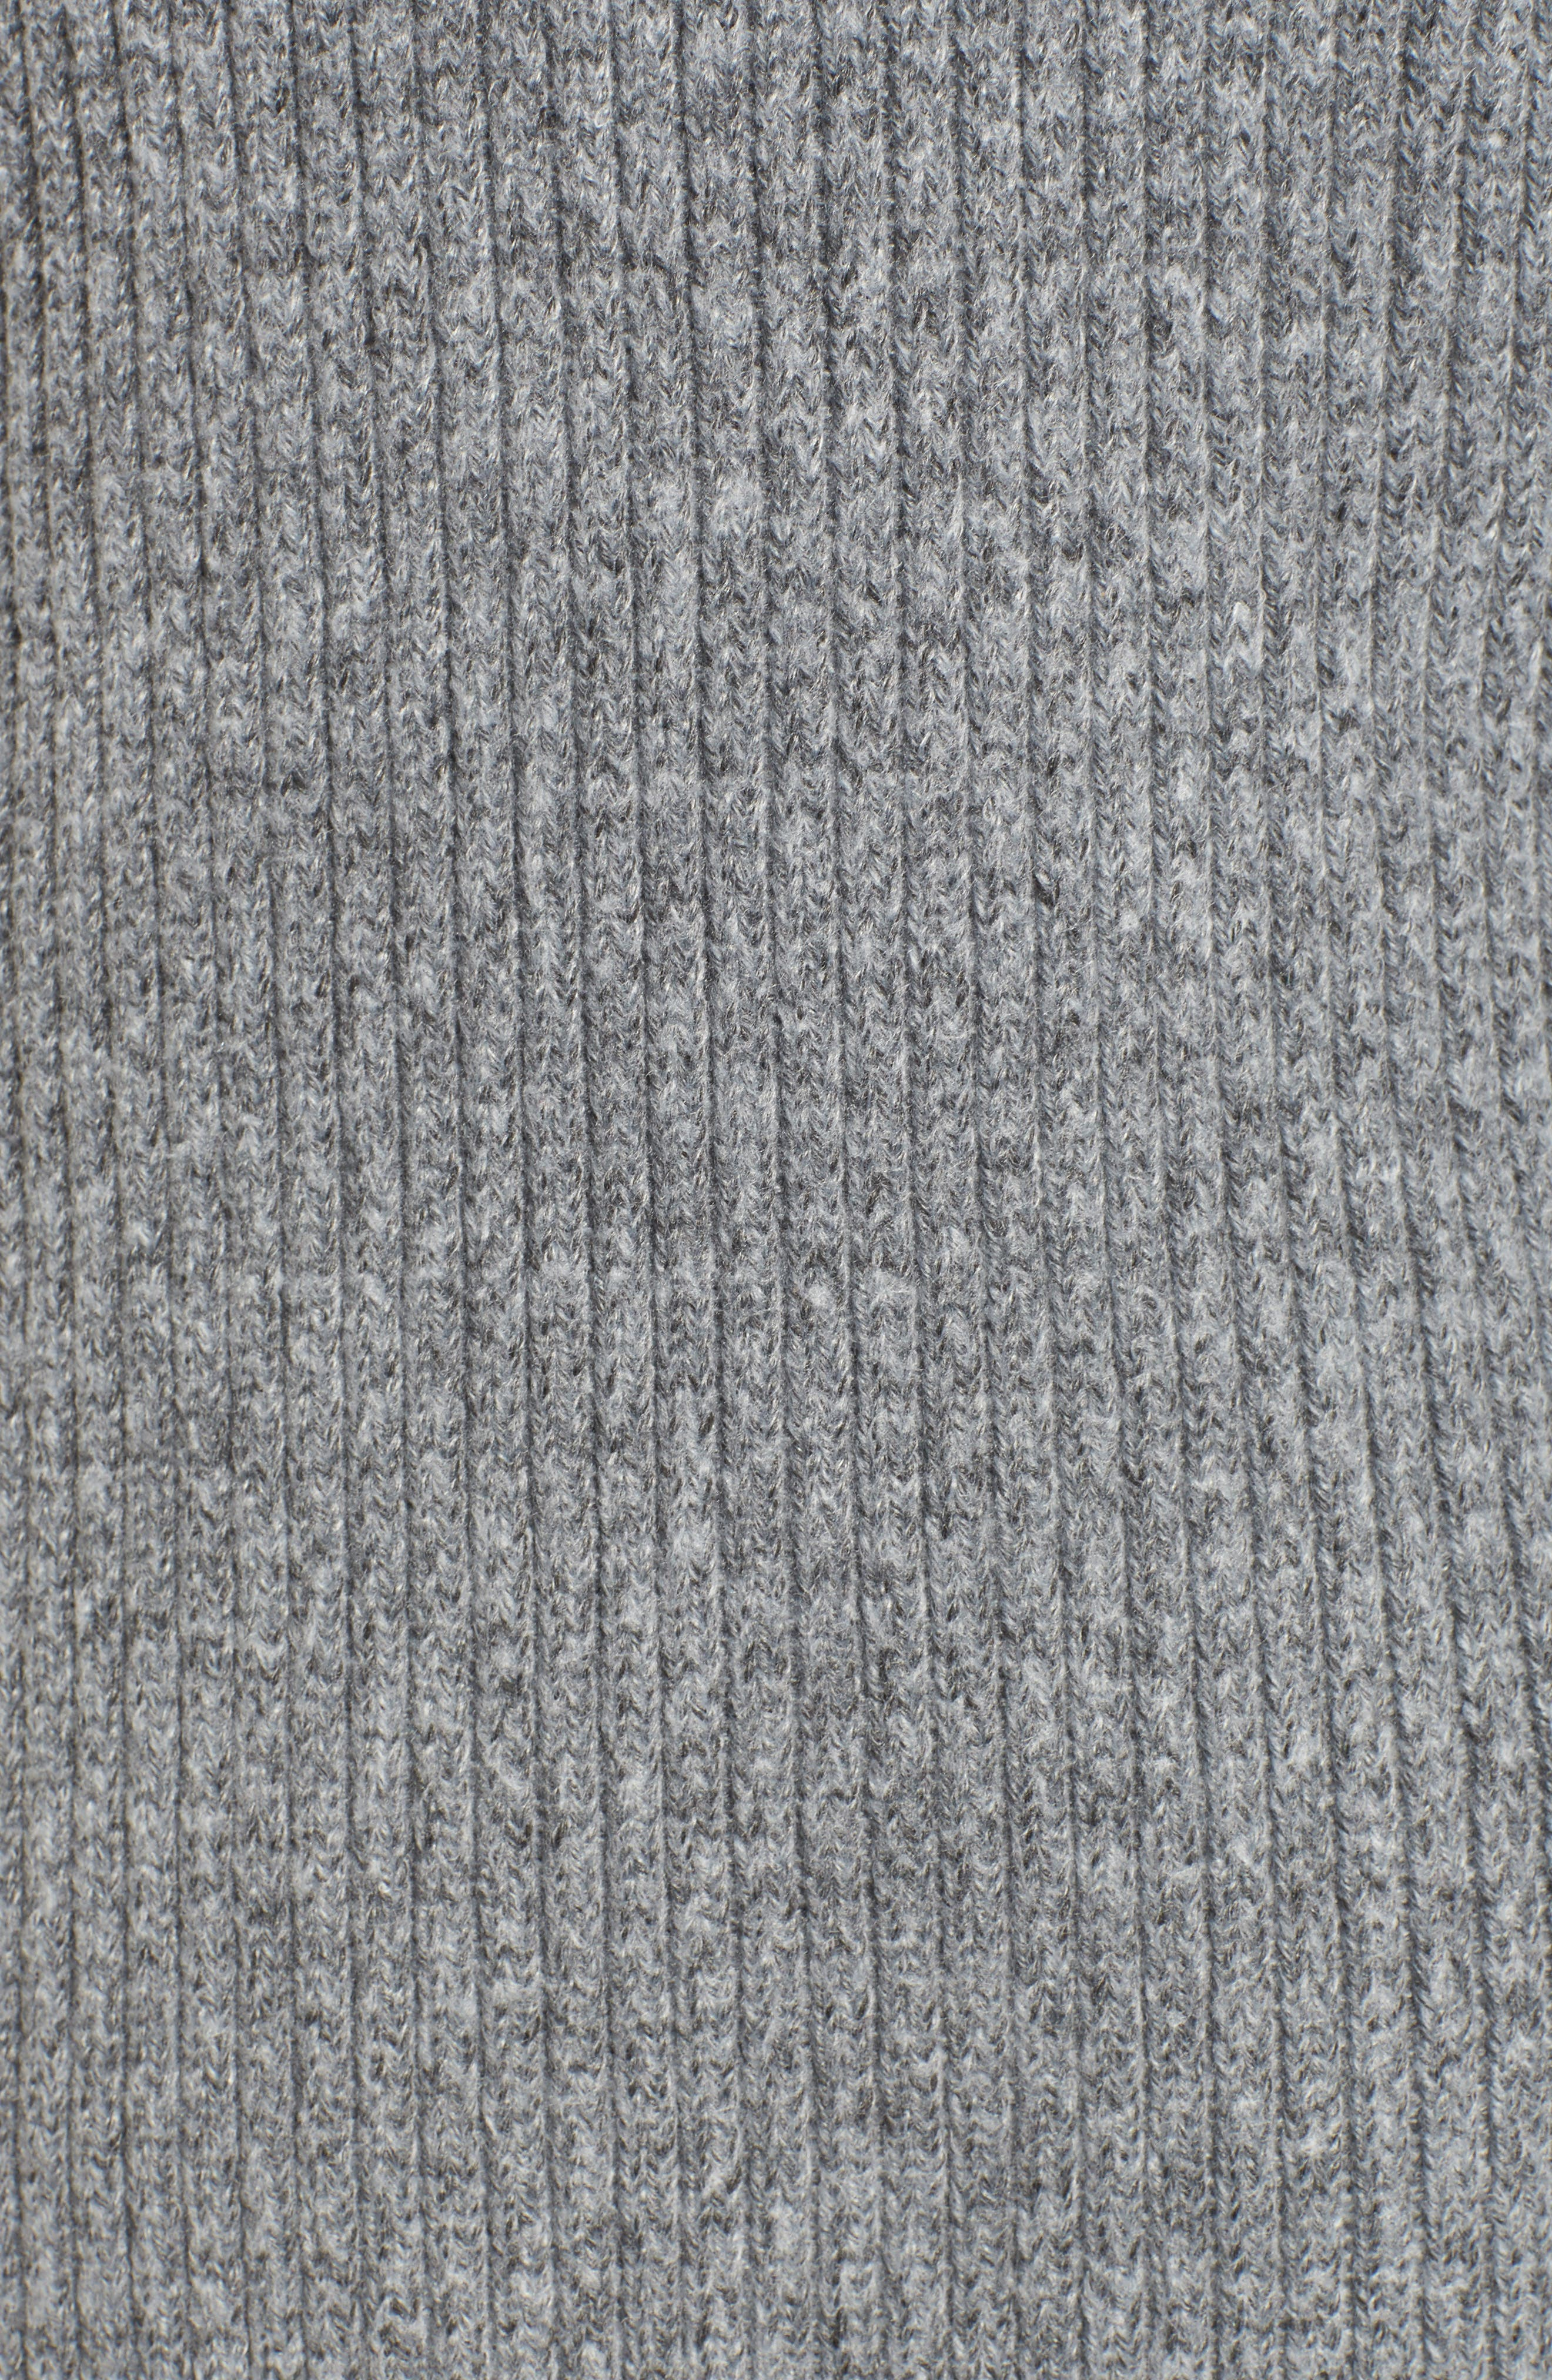 Rodell Cold Shoulder Sweater,                             Alternate thumbnail 5, color,                             Medium Heather Grey